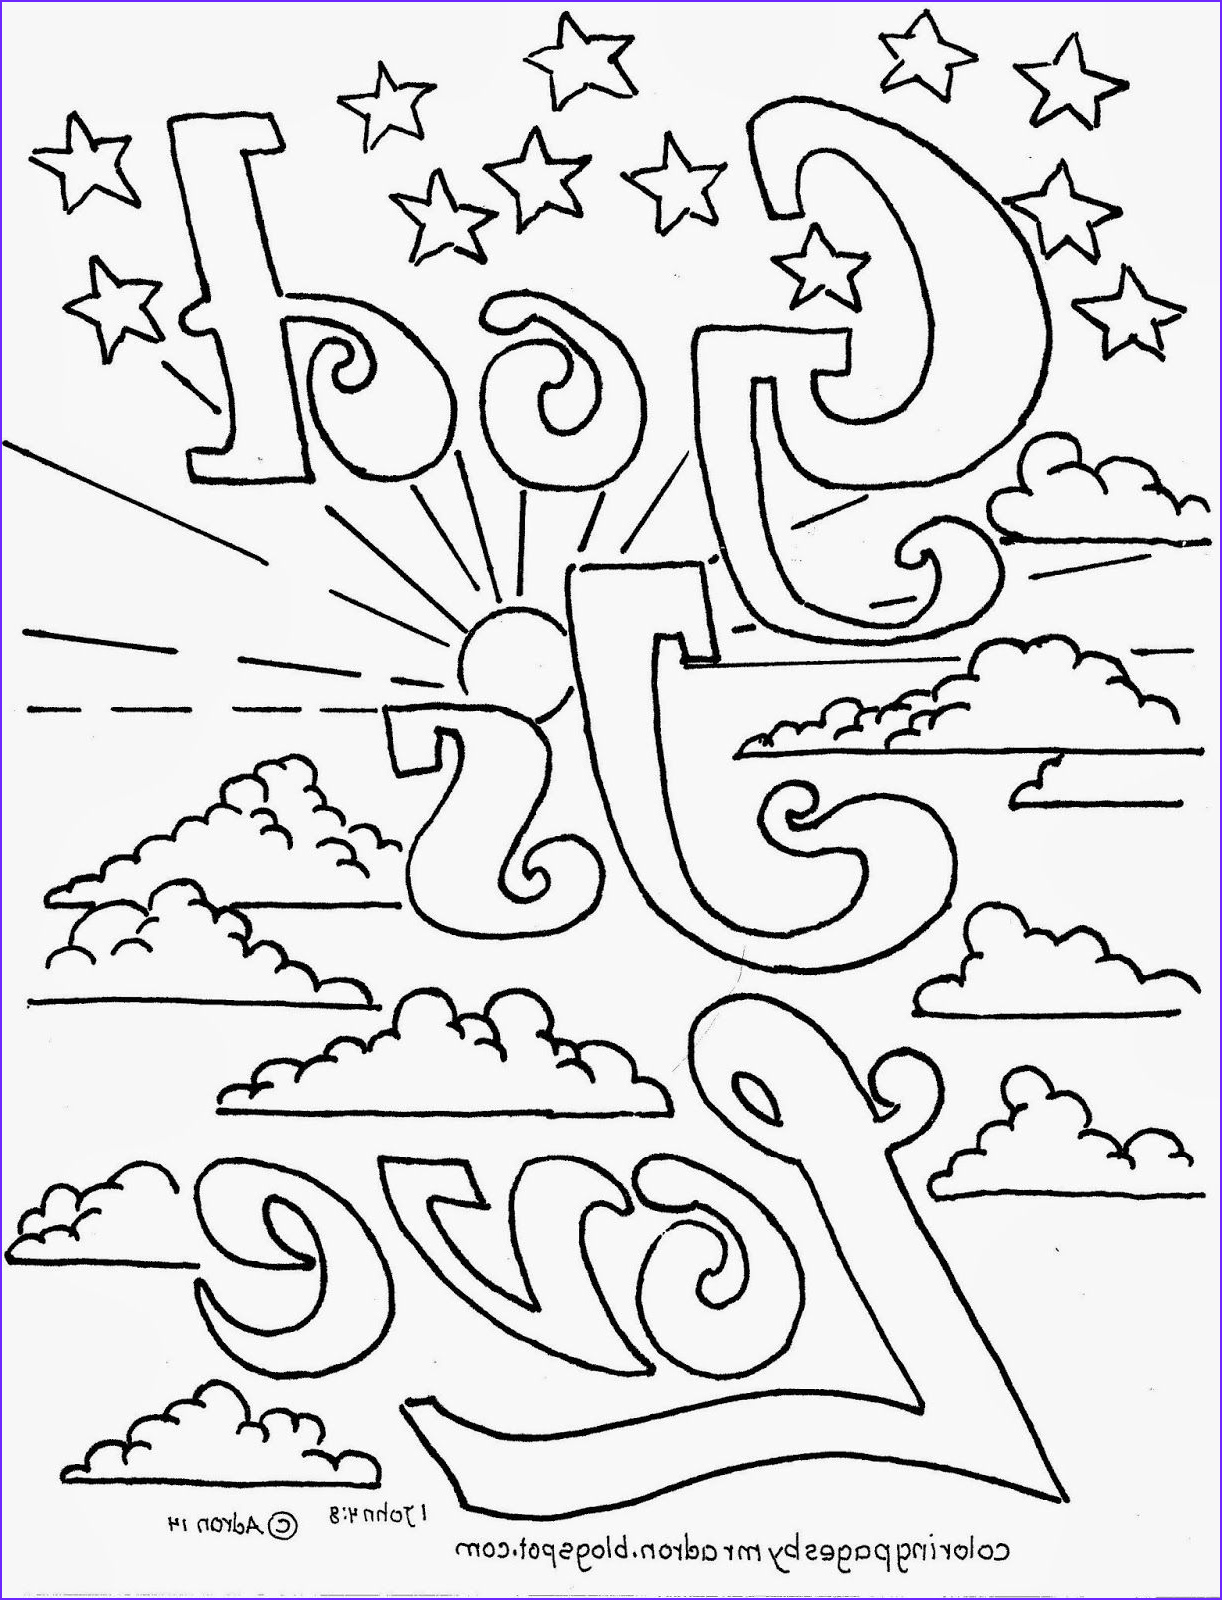 Printable Bible Coloring Pages New Images Coloring Pages For Kids By Mr Adron God Is Love